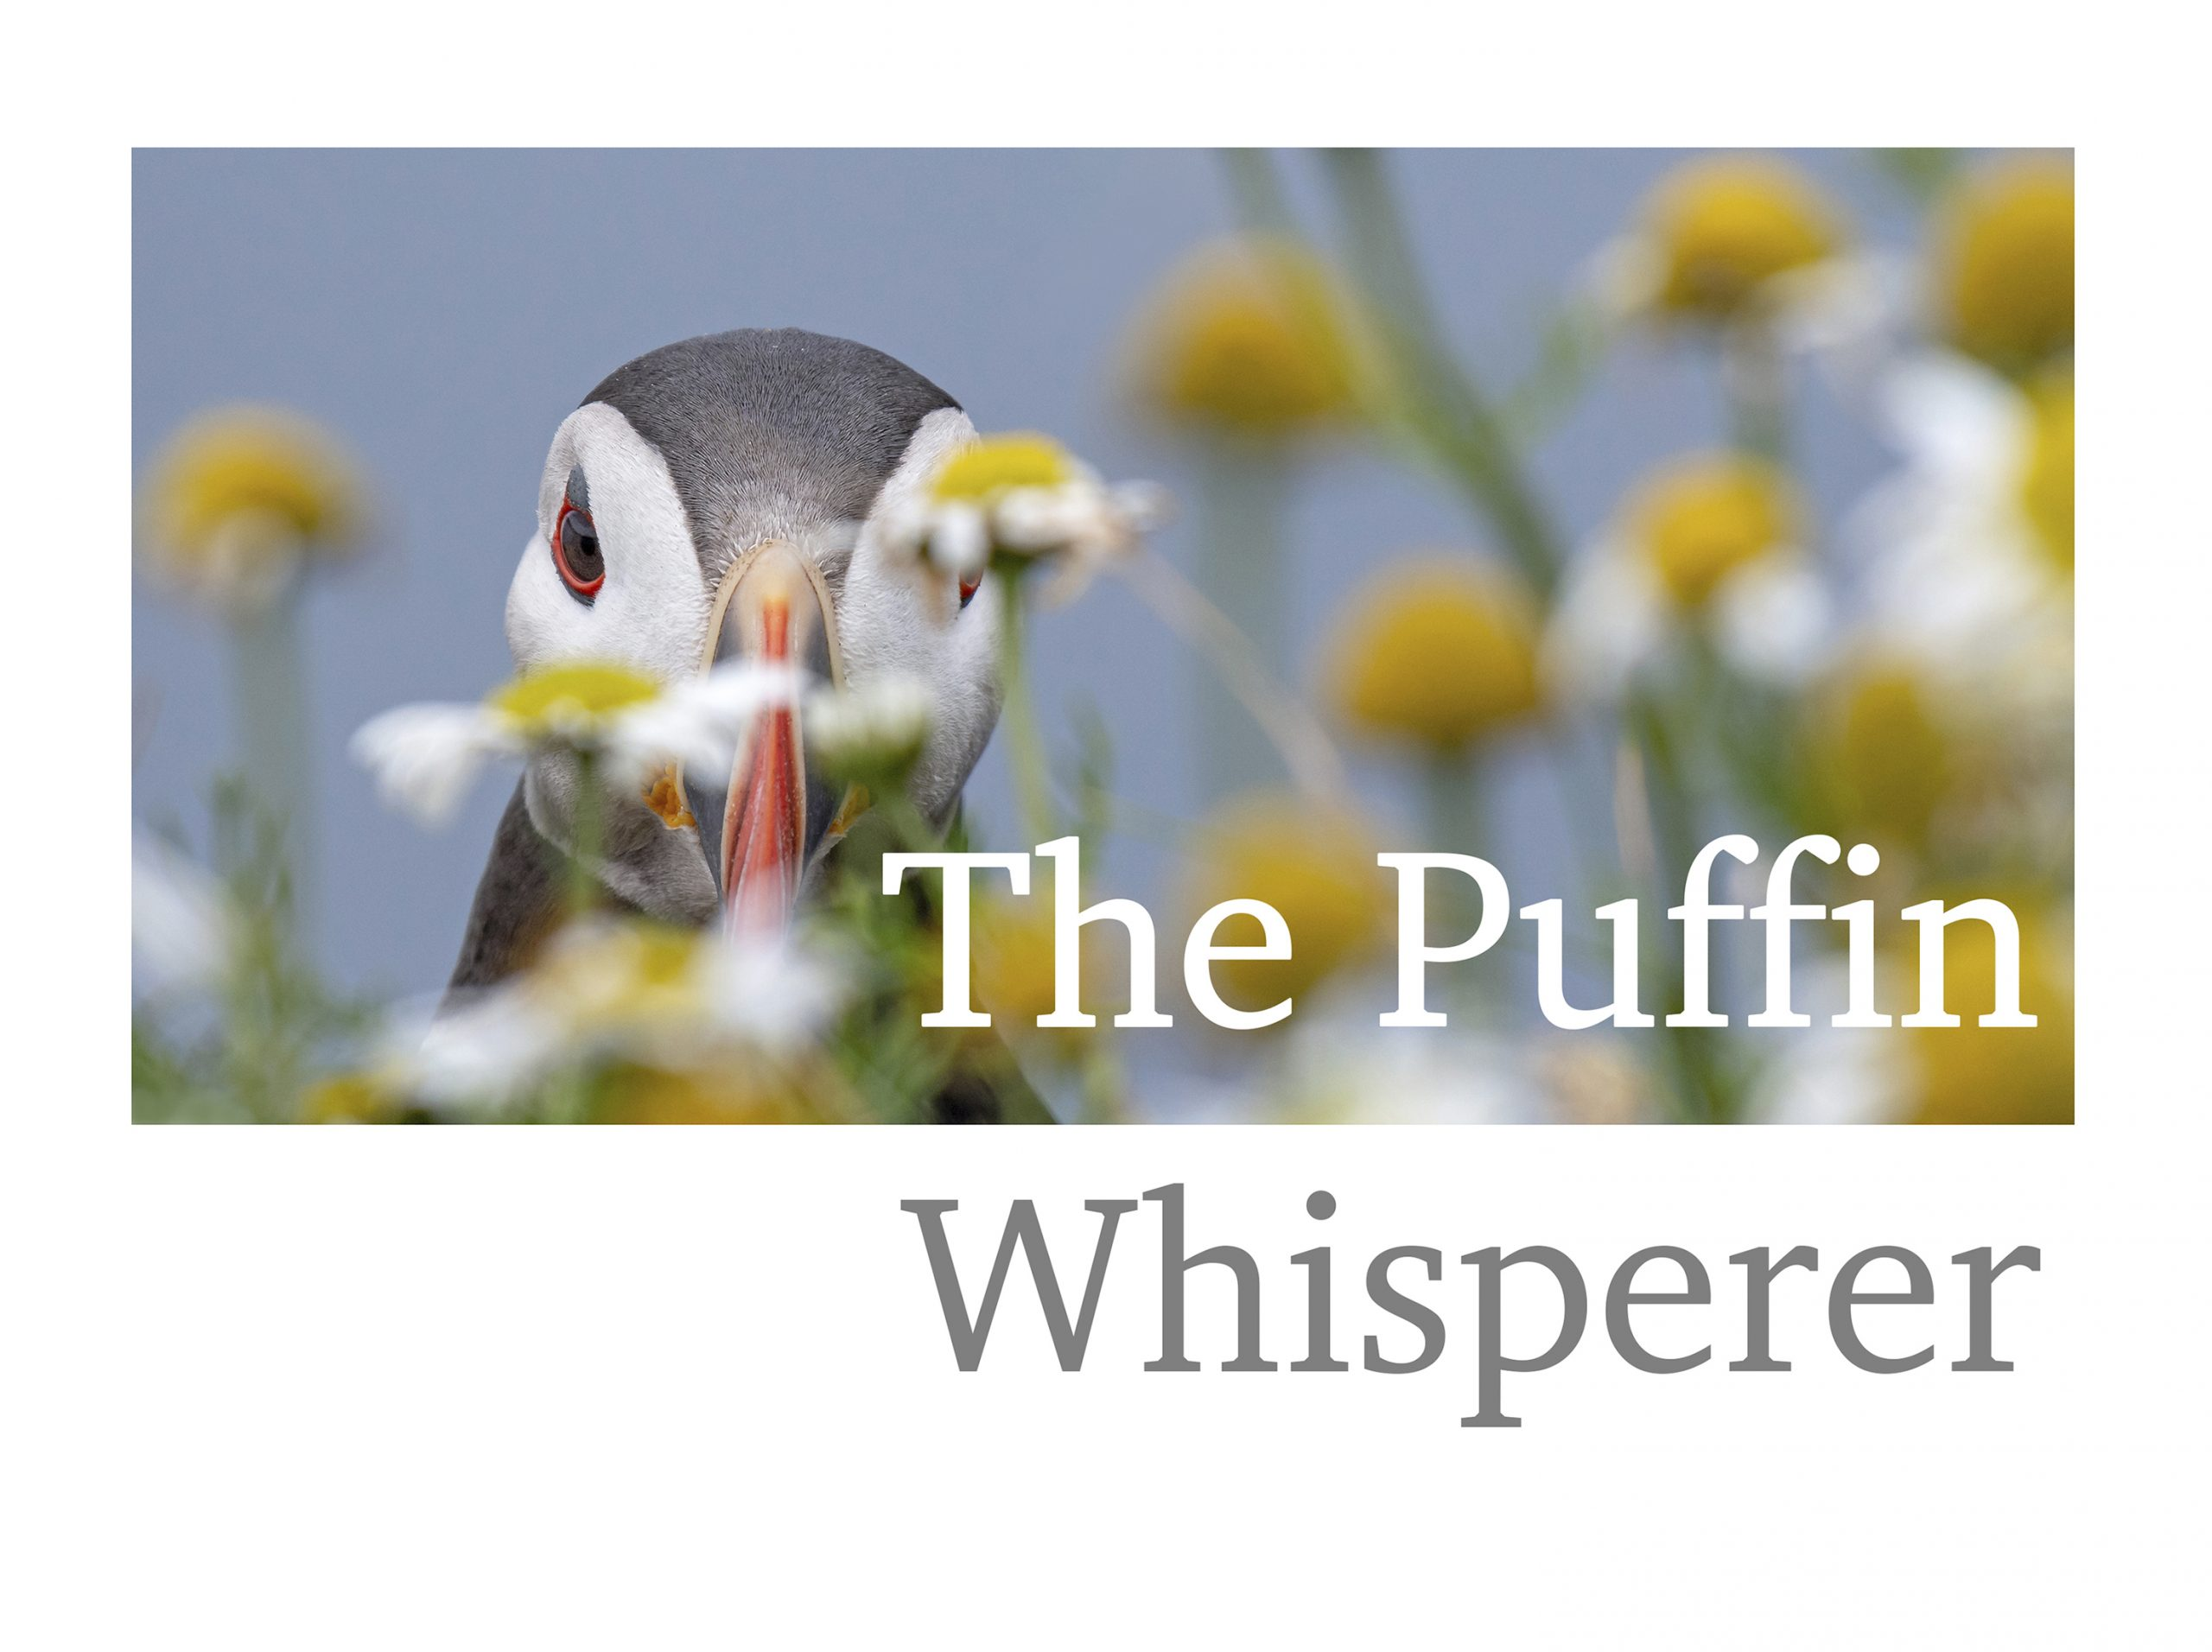 The Puffin Whisperer